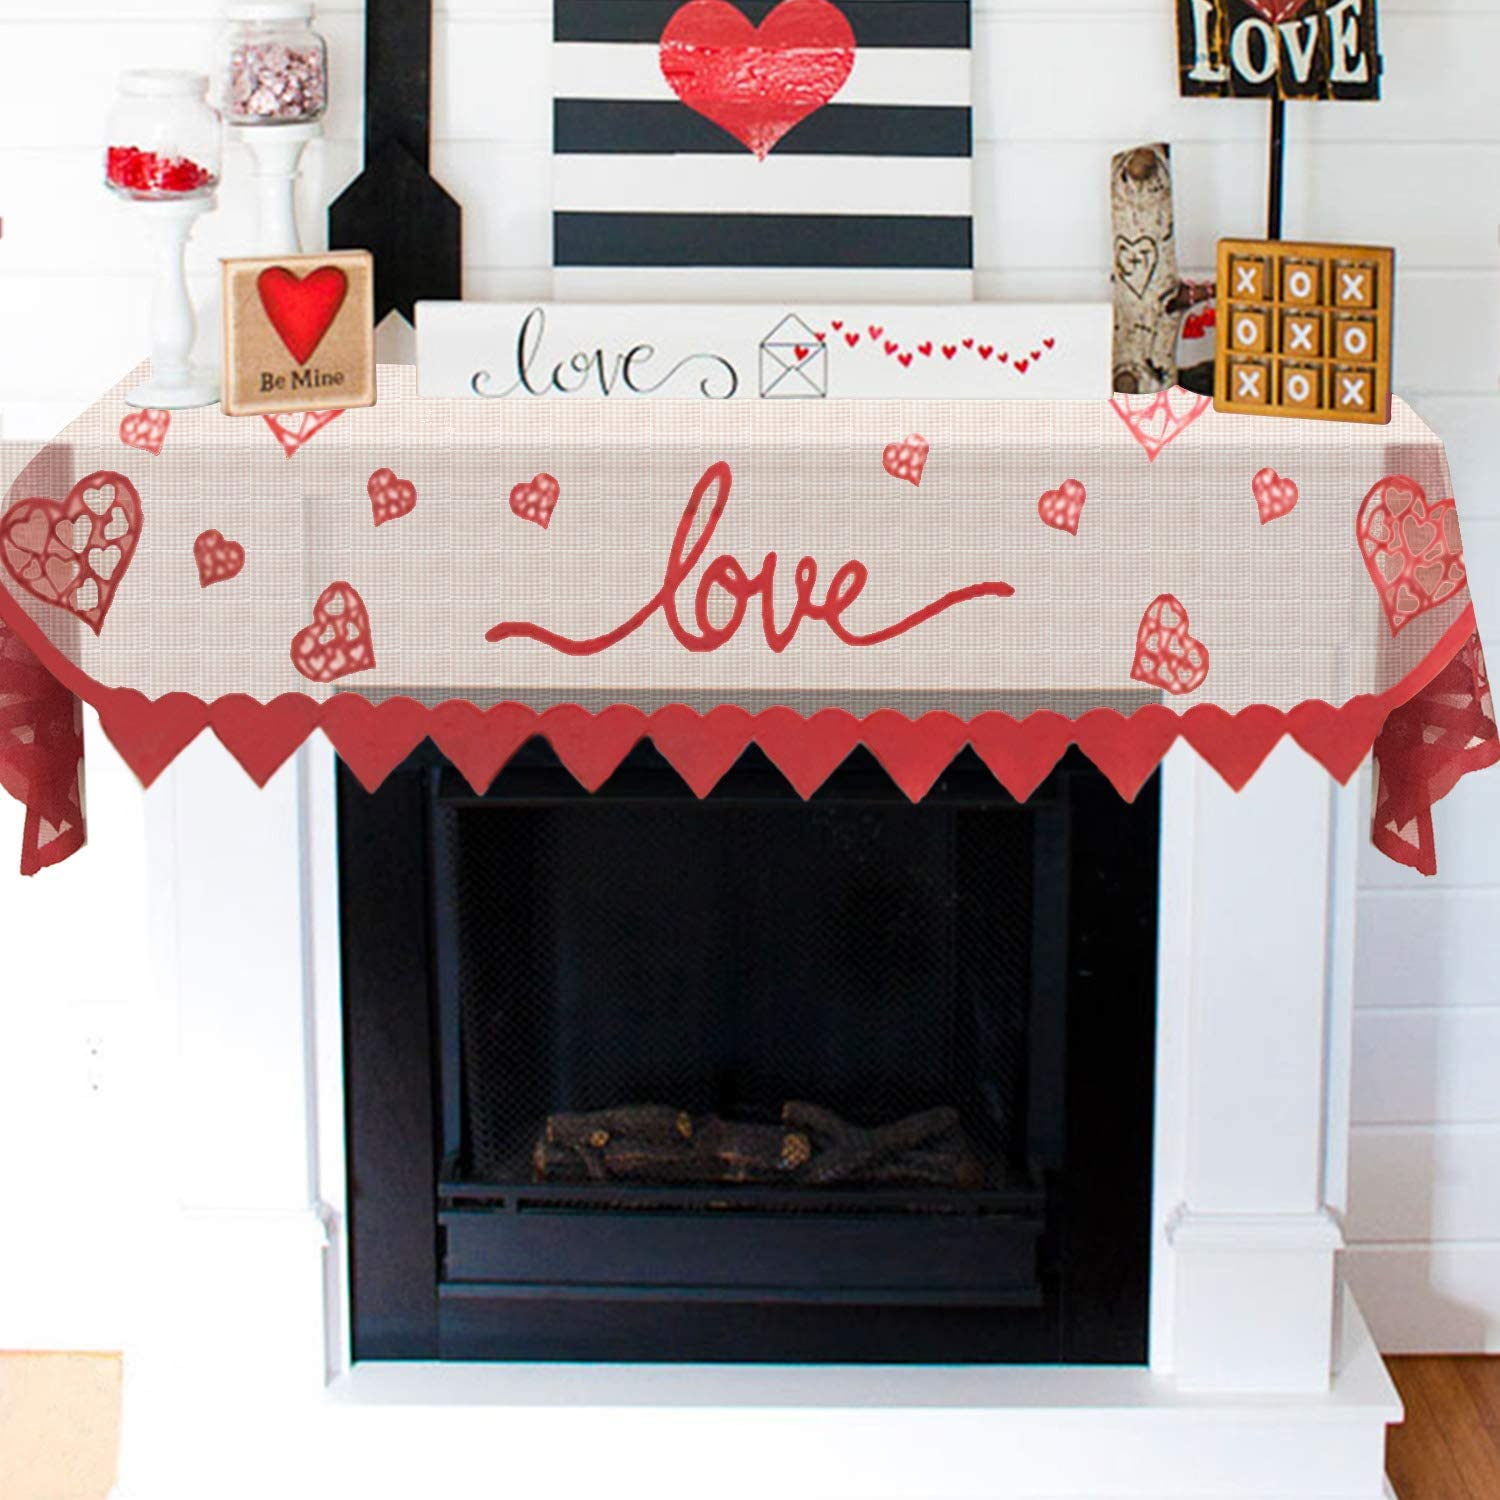 Proposal Lace Mantel Cover Runner for Home Living Room Decorations Red Heart Mantle Scarf for Fireplace Decorations Special Night Romantic Indoor Decorations for Valentines Day Anniversary